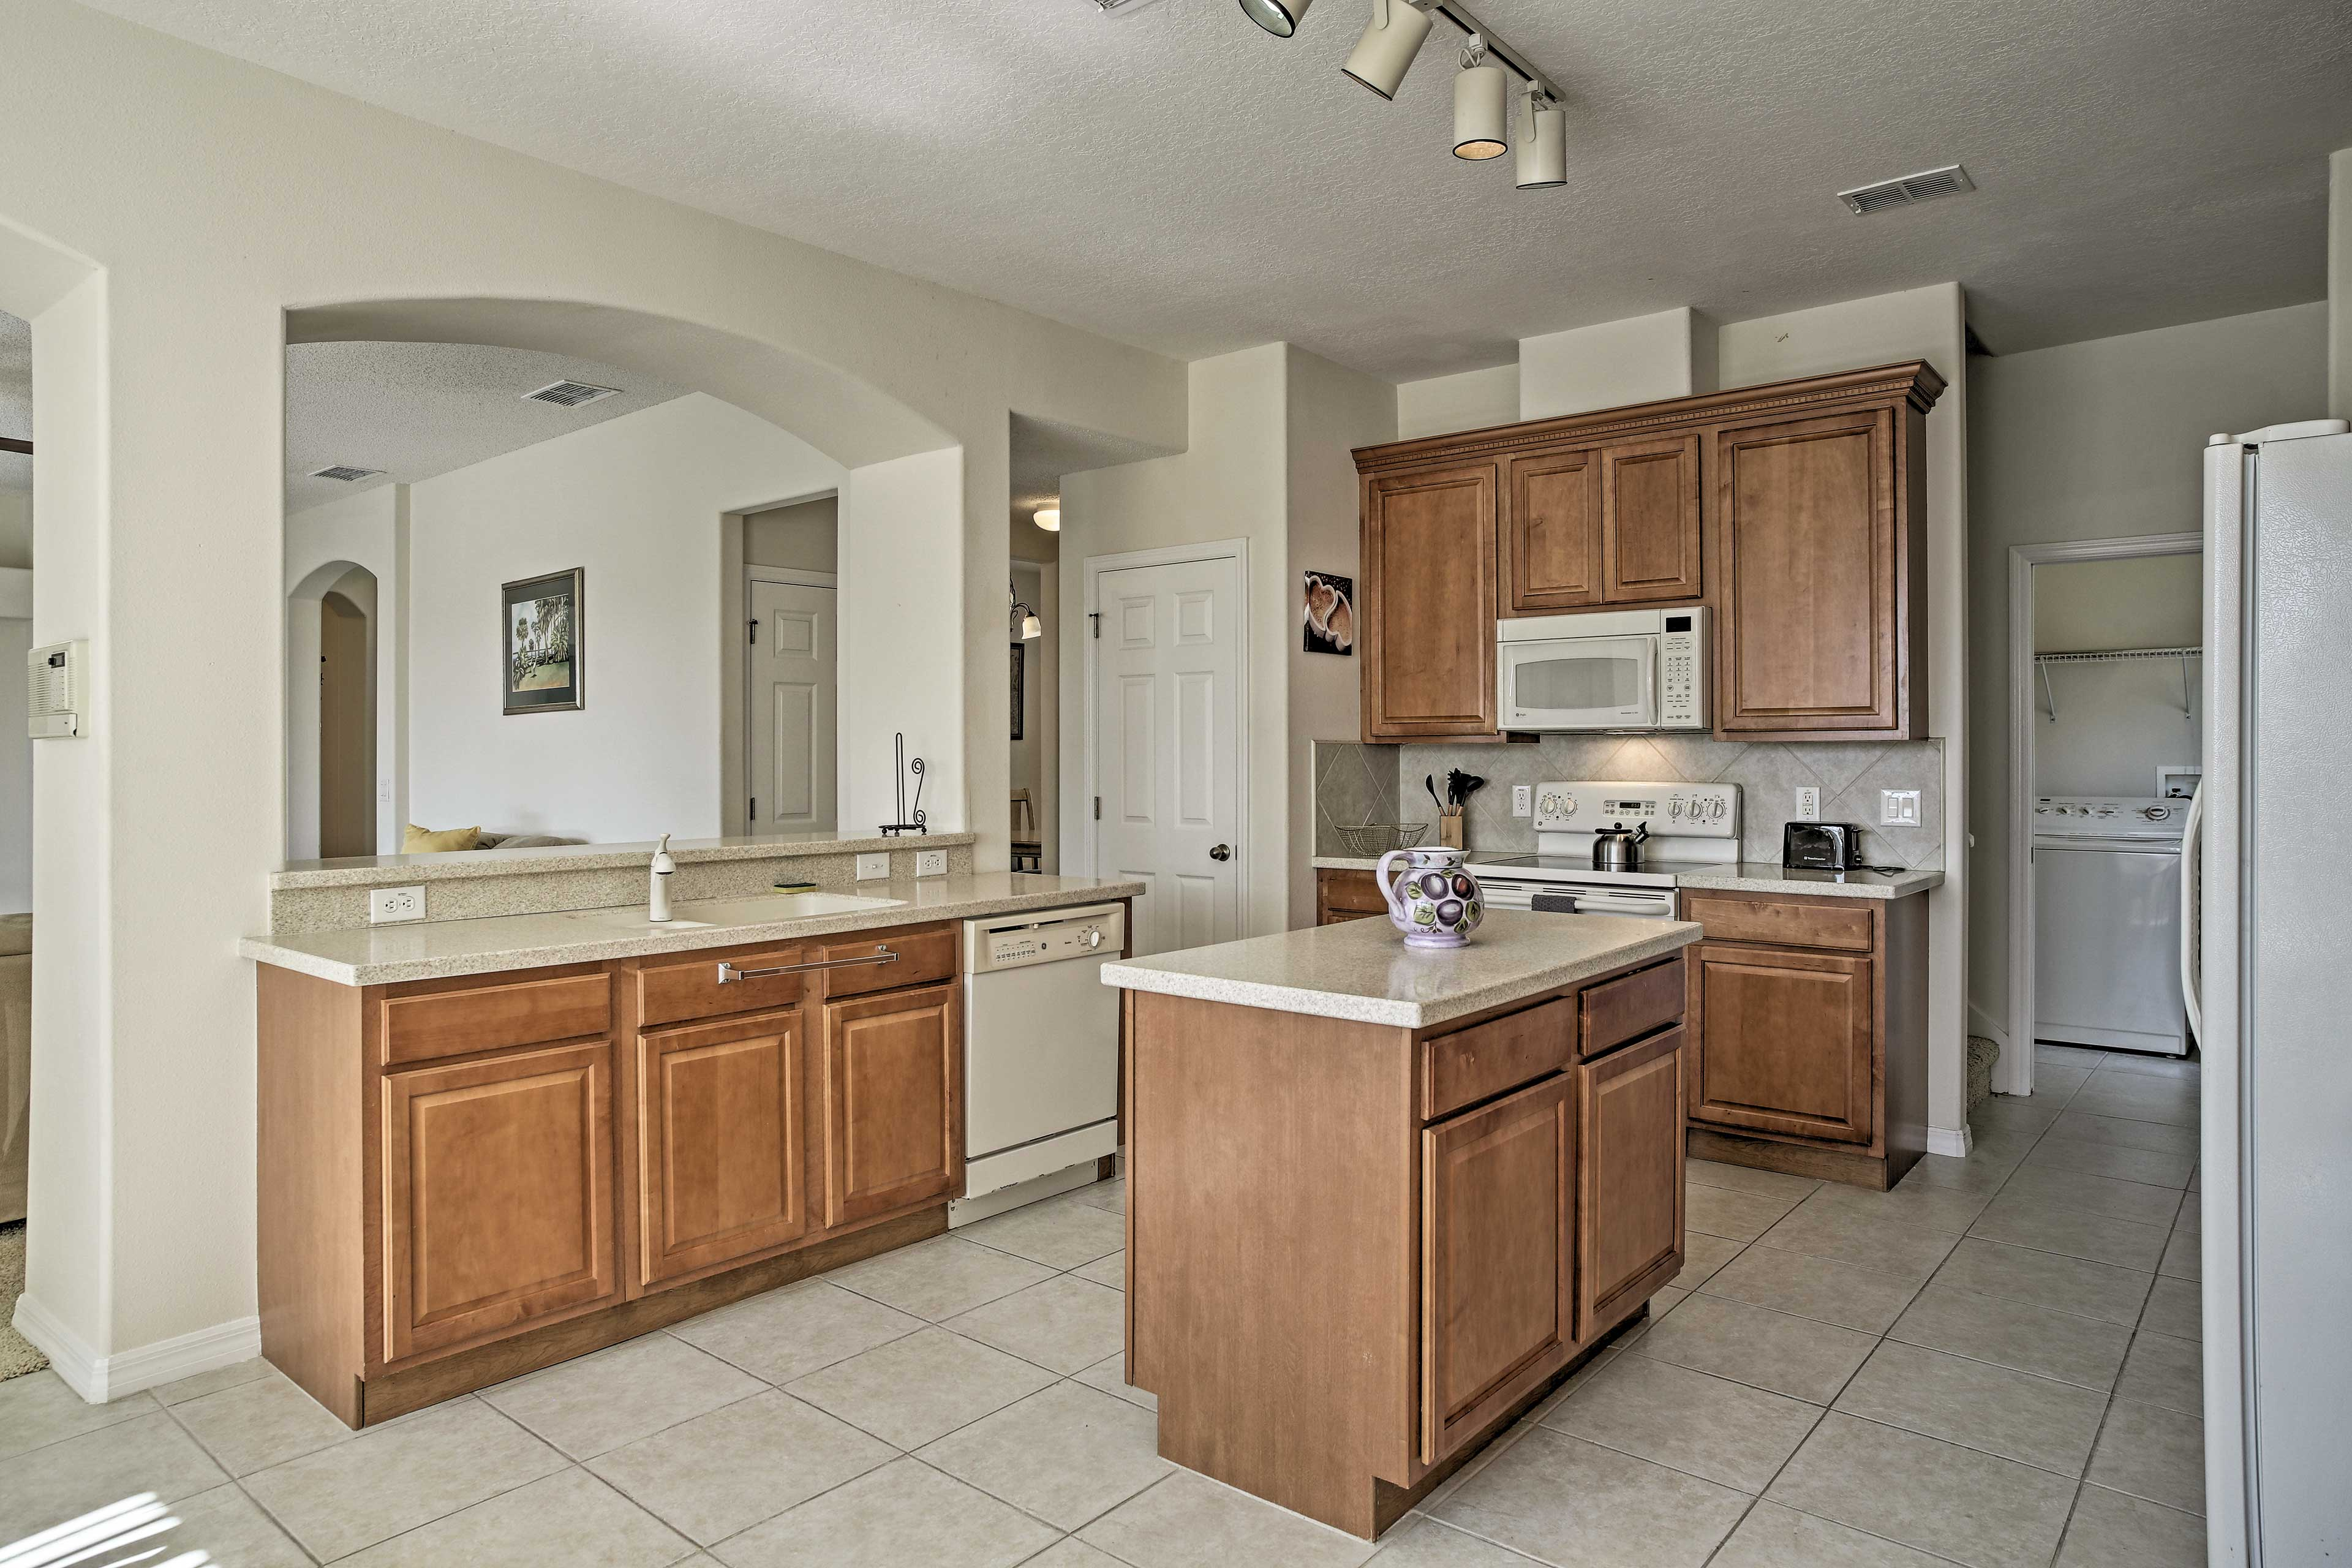 The kitchen is fully equipped for your cooking needs.